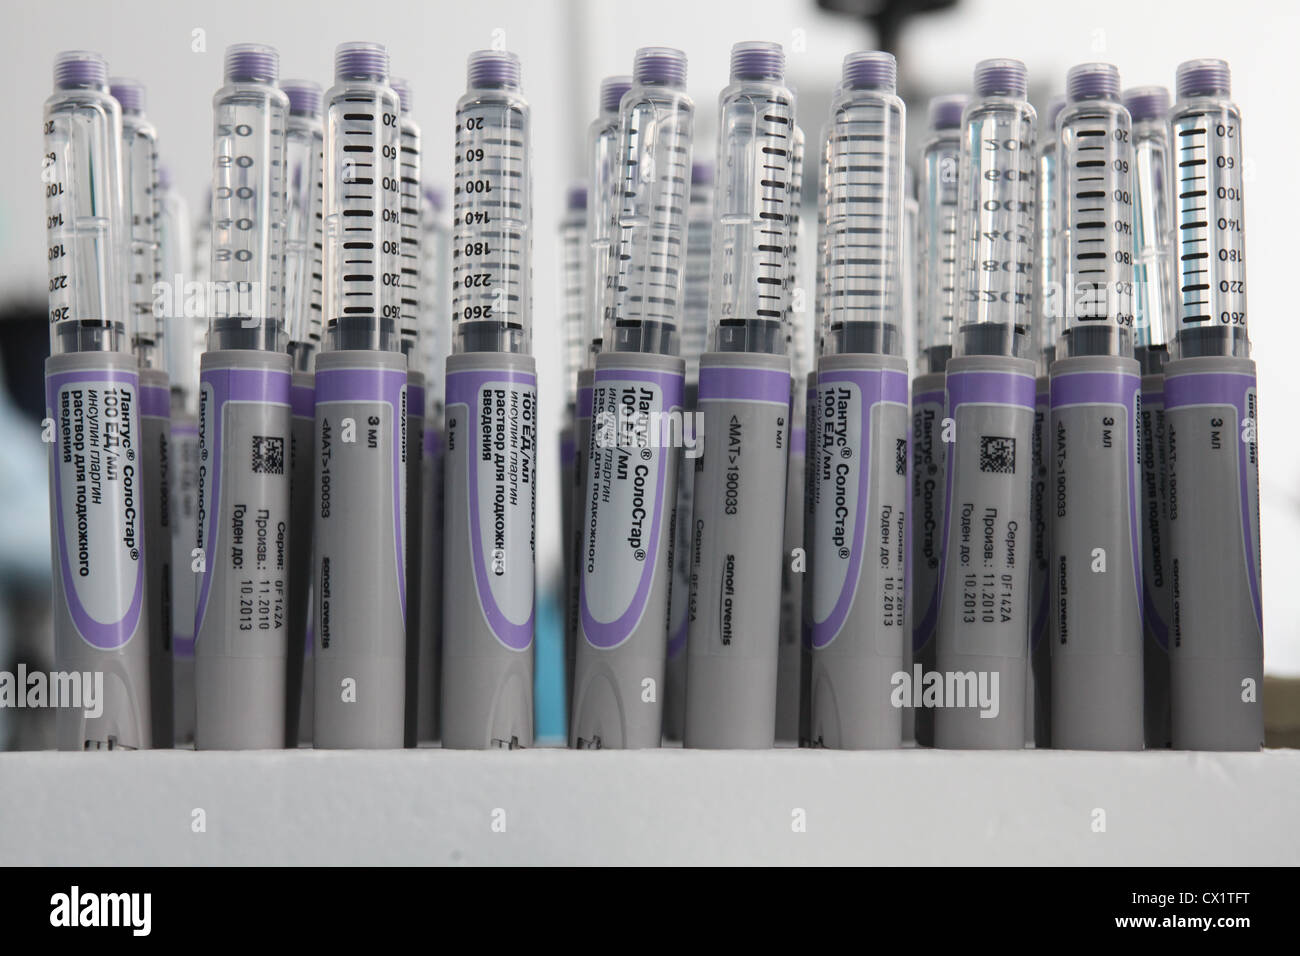 ITAR-TASS: ORYOL REGION, RUSSIA. MAY 24, 2011. Insulin glargine pens (brand name Lantus SoloStar) at a ZAO Sanofi - Stock Image